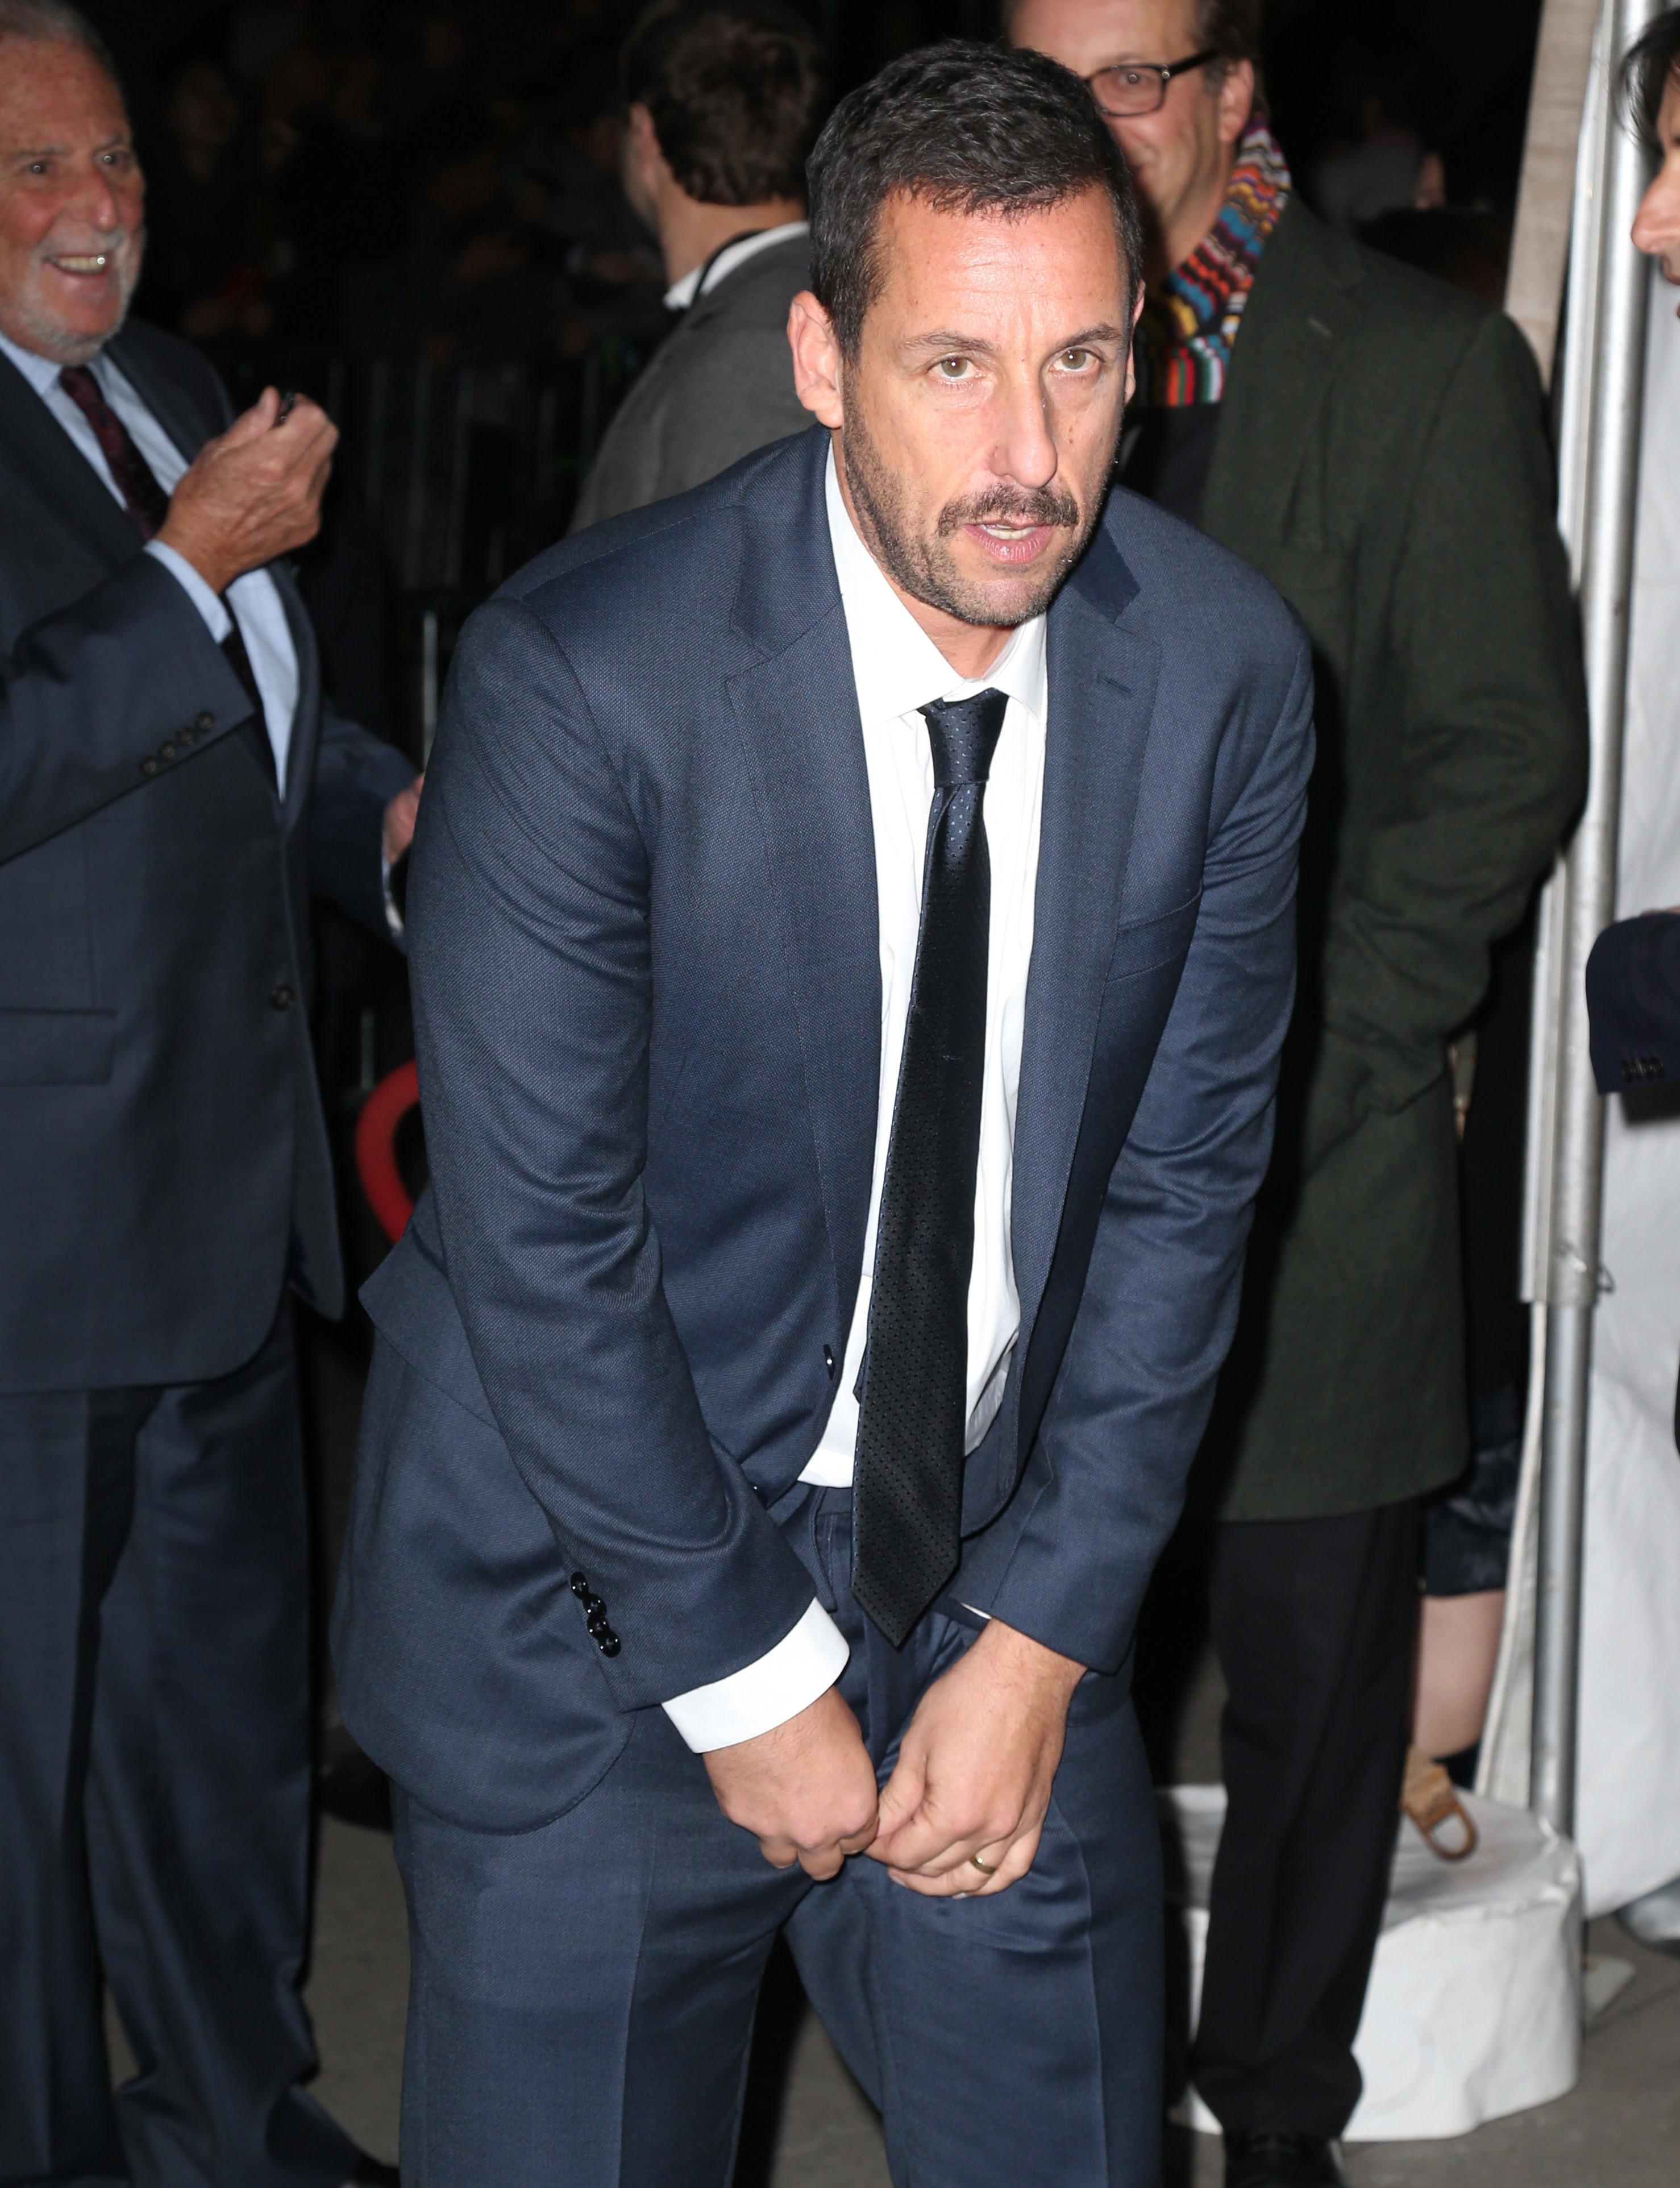 Adam Sandler arrives at the 27th Annual IFP Gotham Awards in New York City on Nov. 27, 2017.